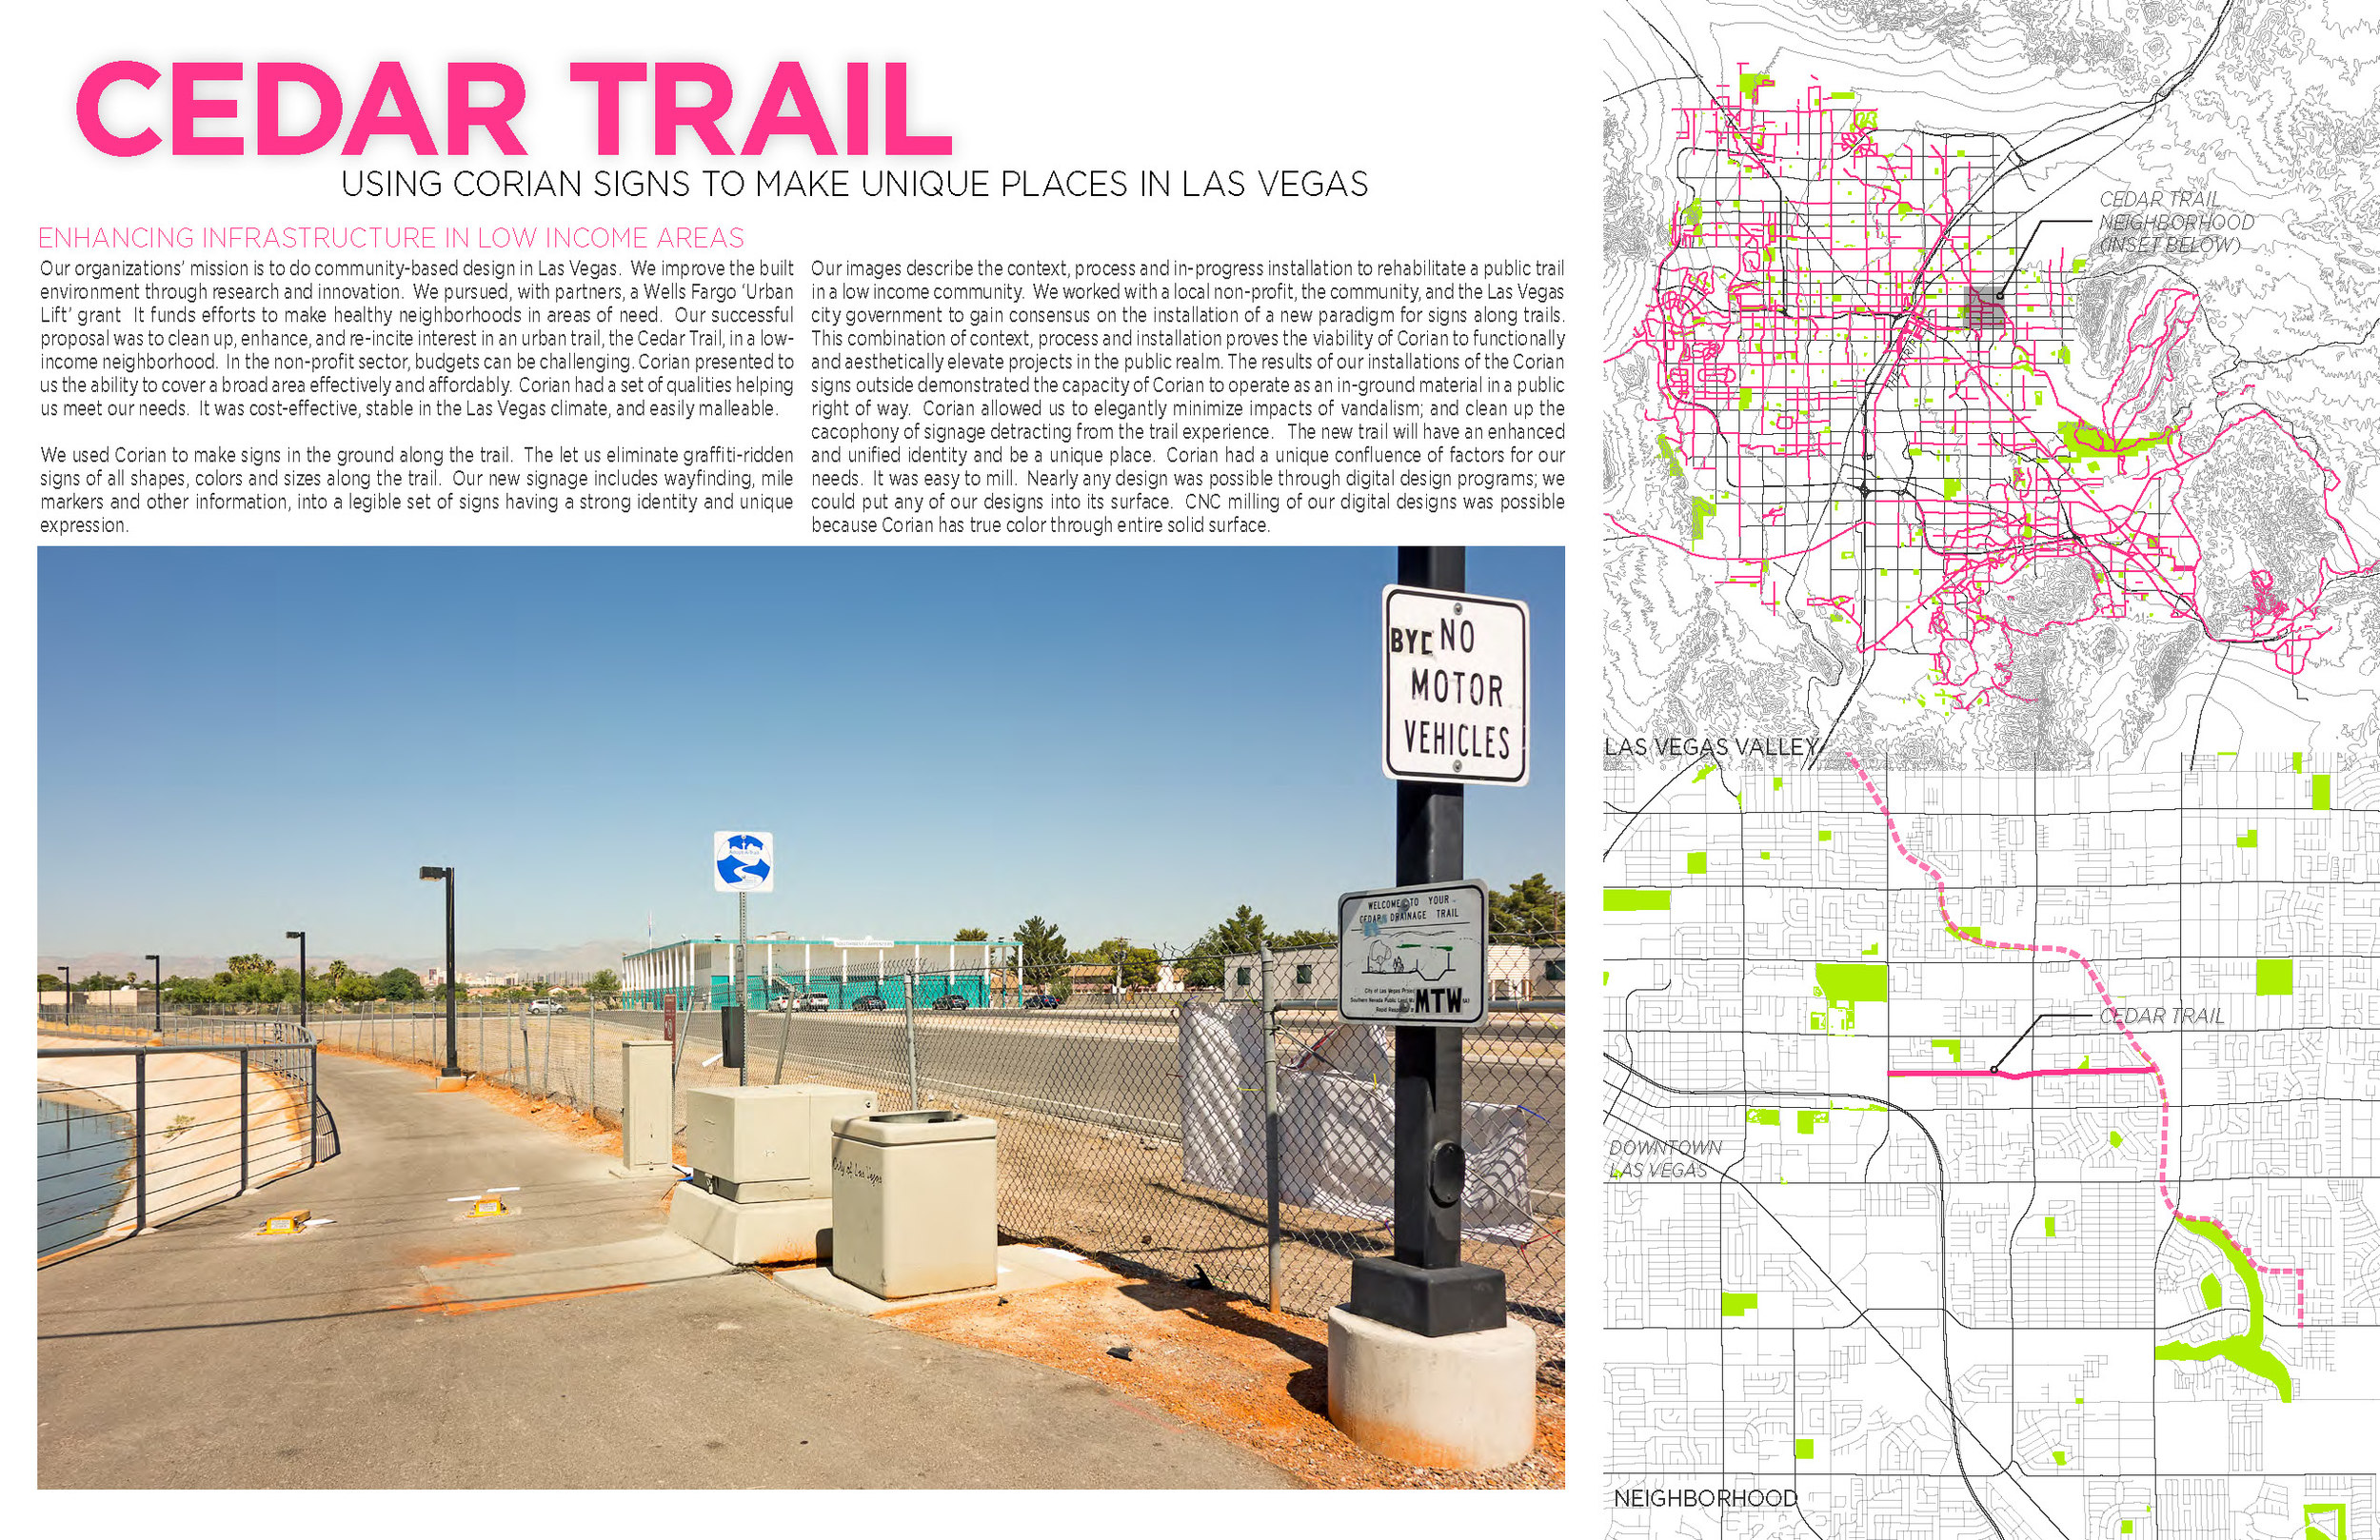 A sample of the trail condition and location maps with the Las Vegas Valley on top and area on the bottom map.